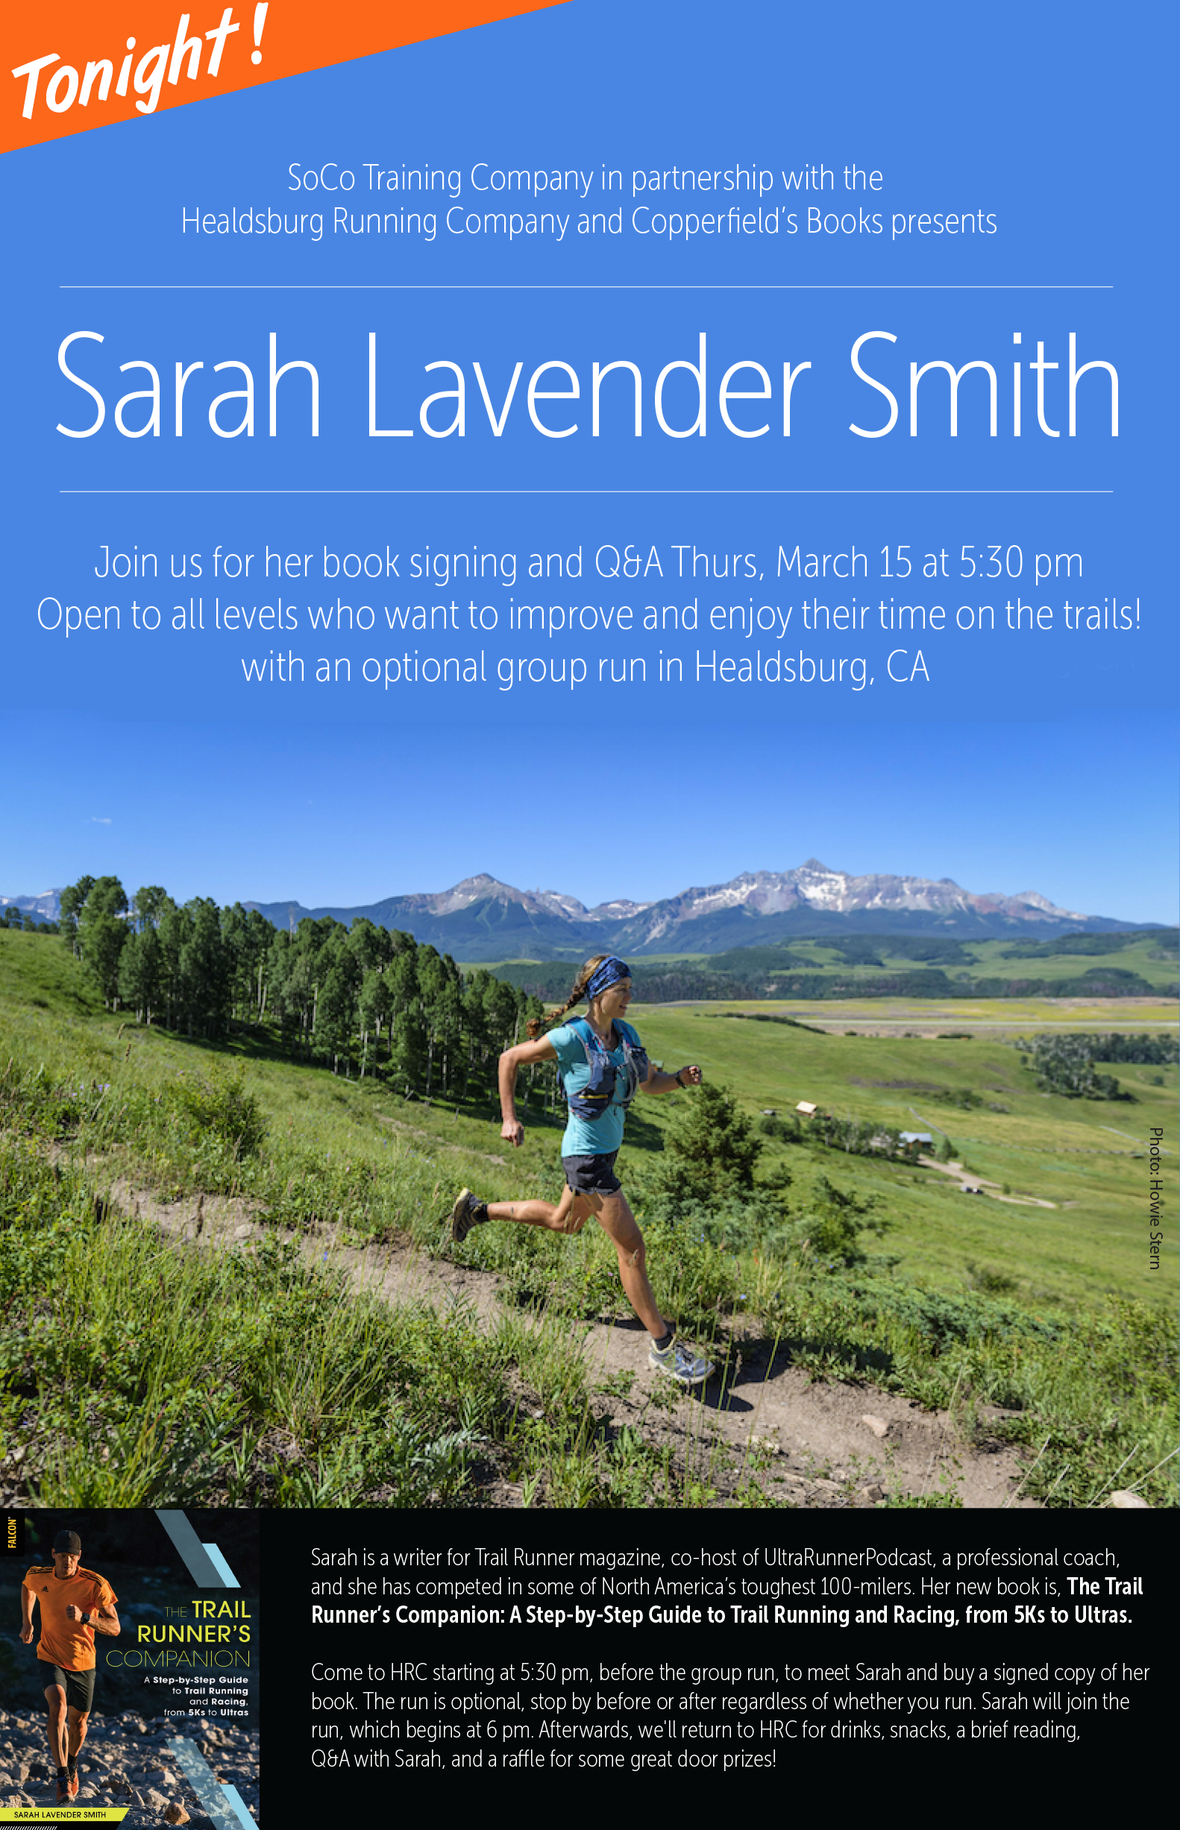 trail runner companion poster